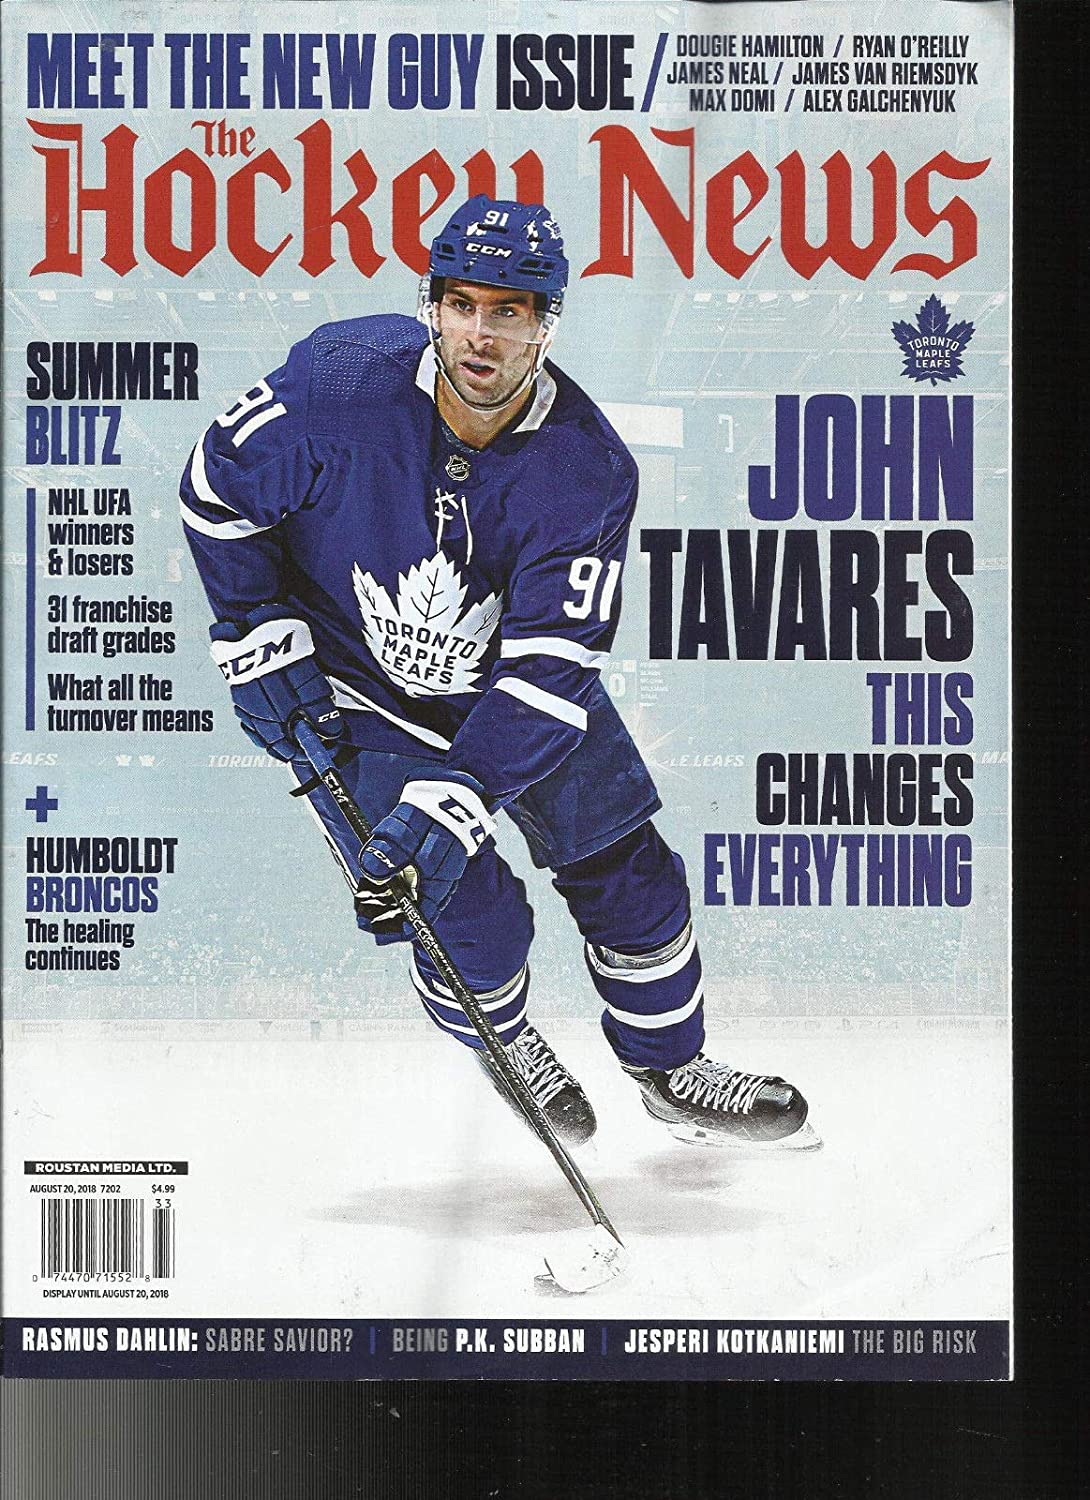 THE HOCKEY NEWS MAGAZINE, MEET THE NEW GUY ISSUE, AUGUST, 2018 s3457